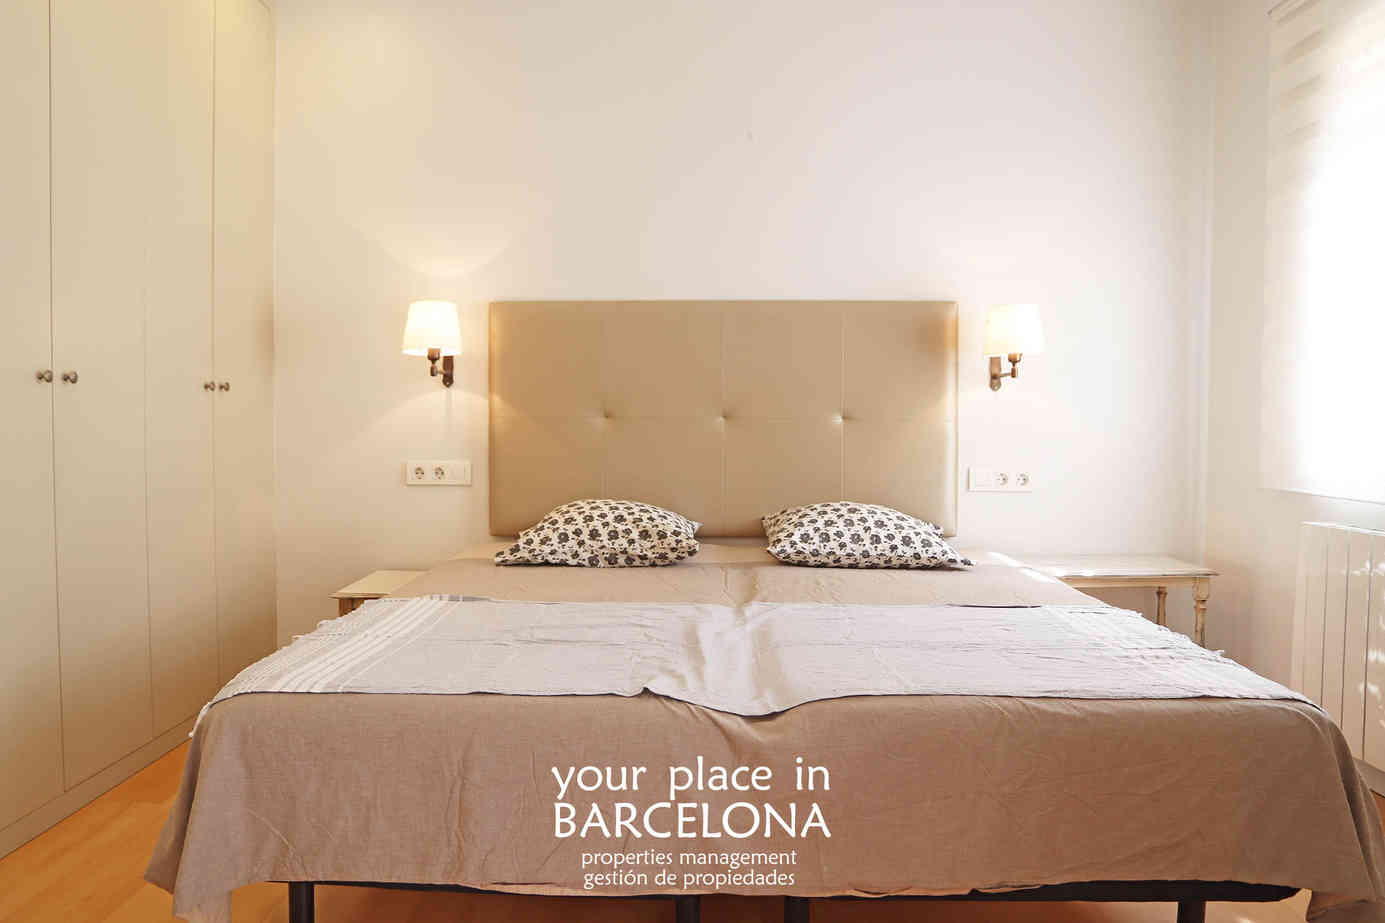 your-place-in-barcelona-alqiler-venta-pi